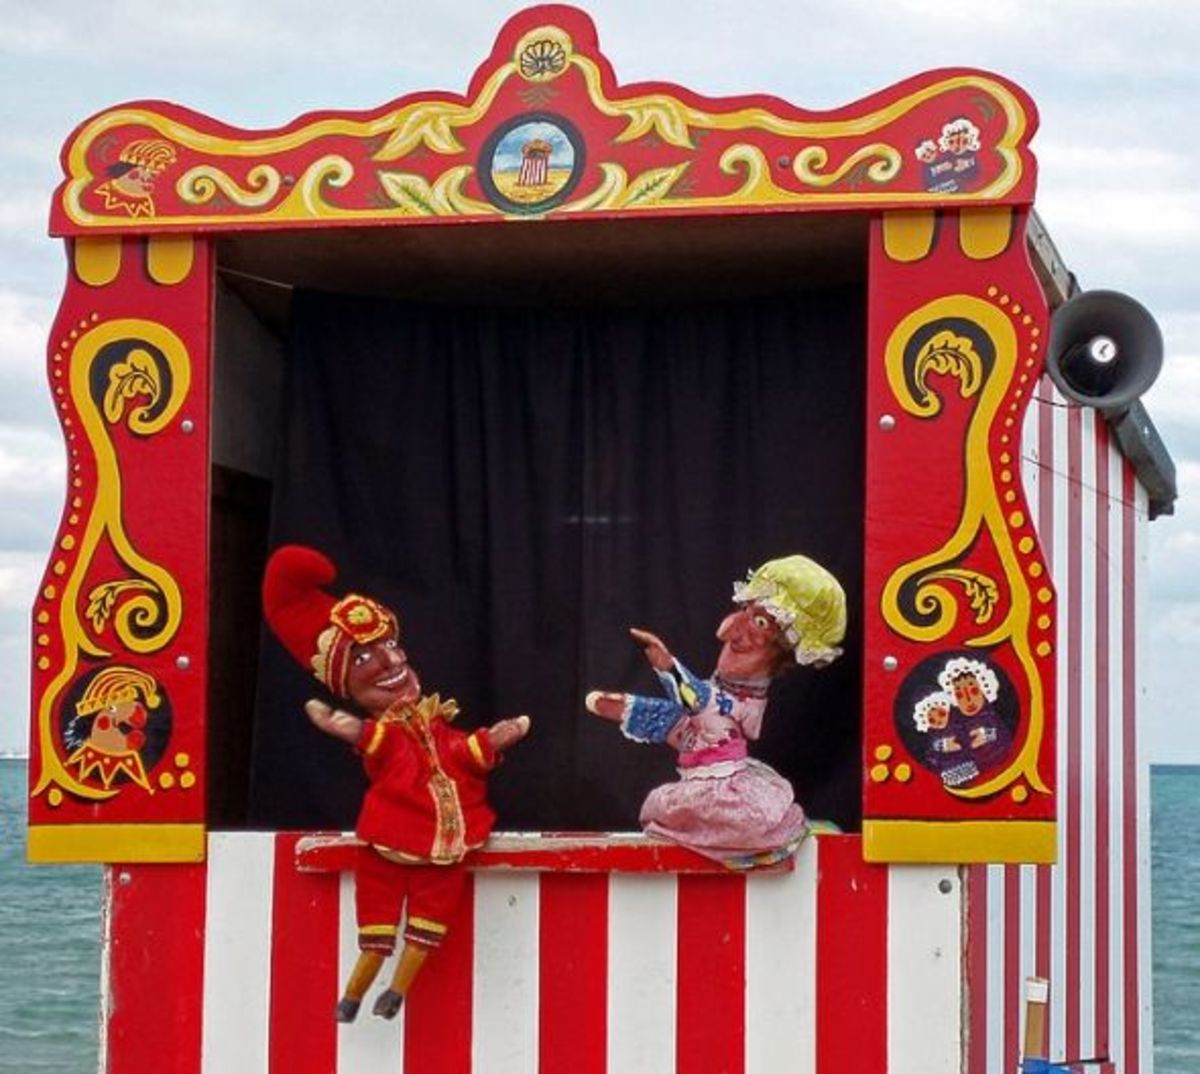 Punch and Judy on tour in Swanage, courtesy of Wikimedia